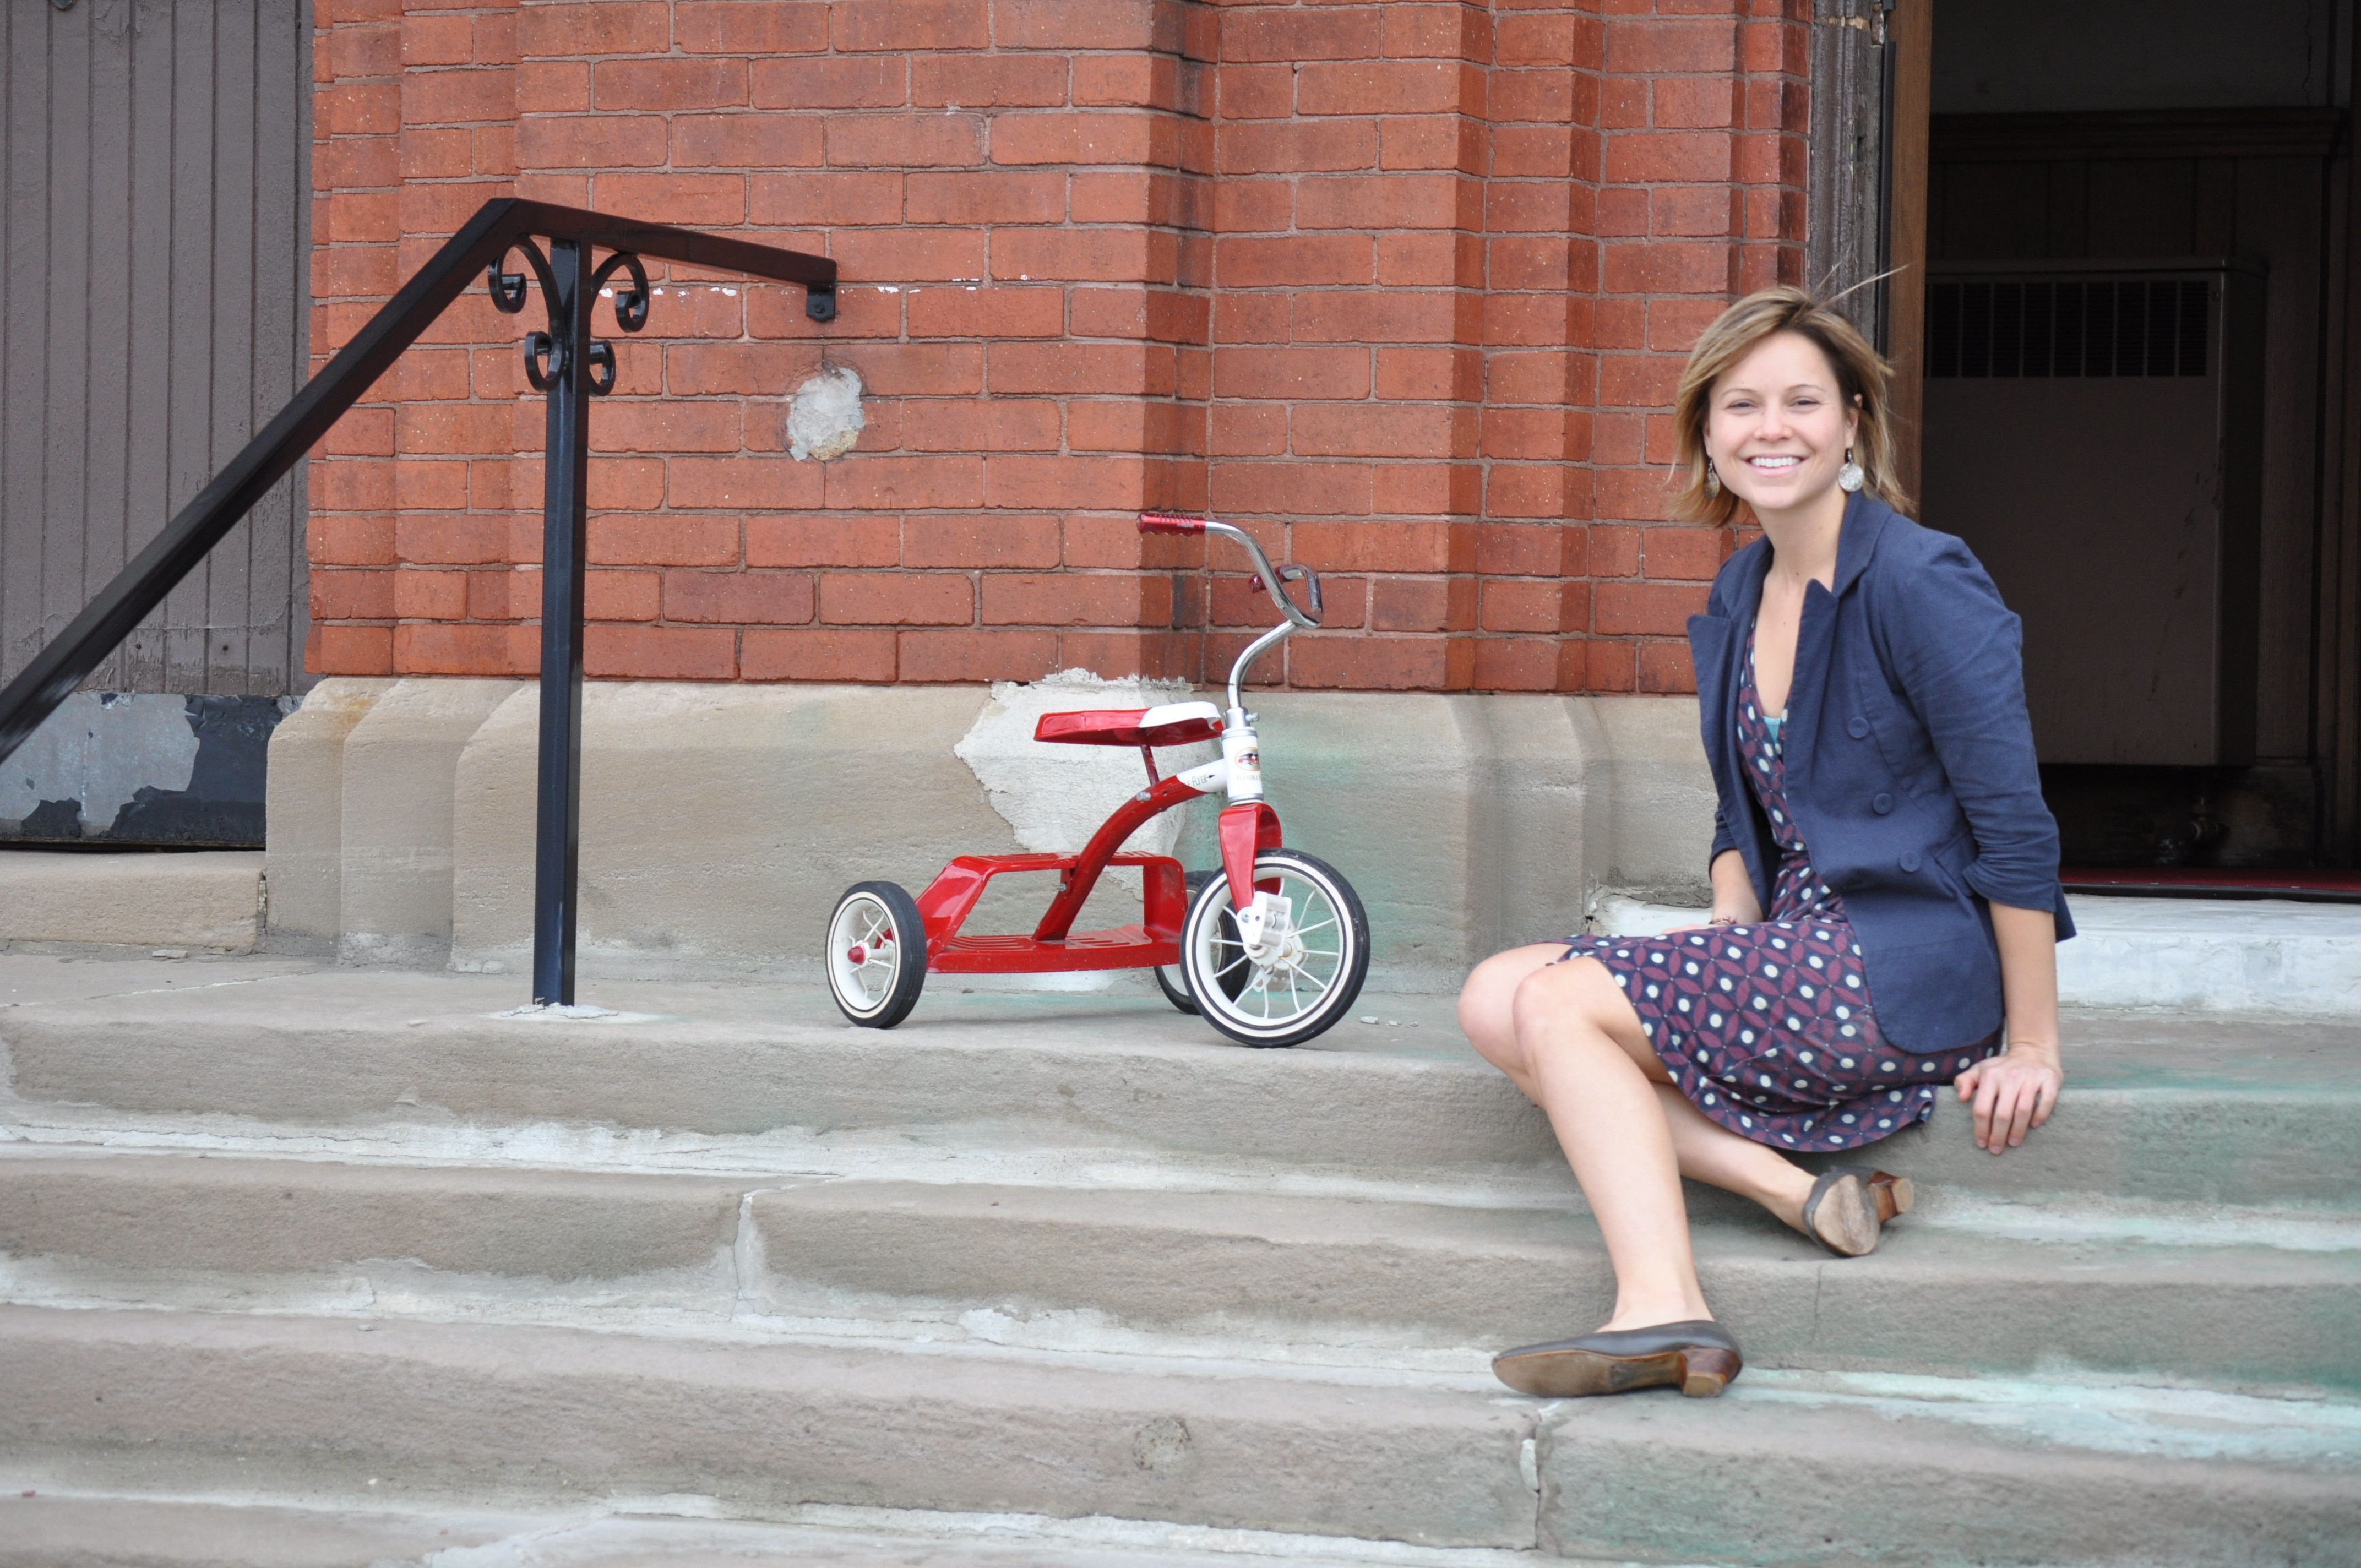 Michele Oberholtzer started The Tricycle Collective in 2014. The name comes from the way she first started finding families t